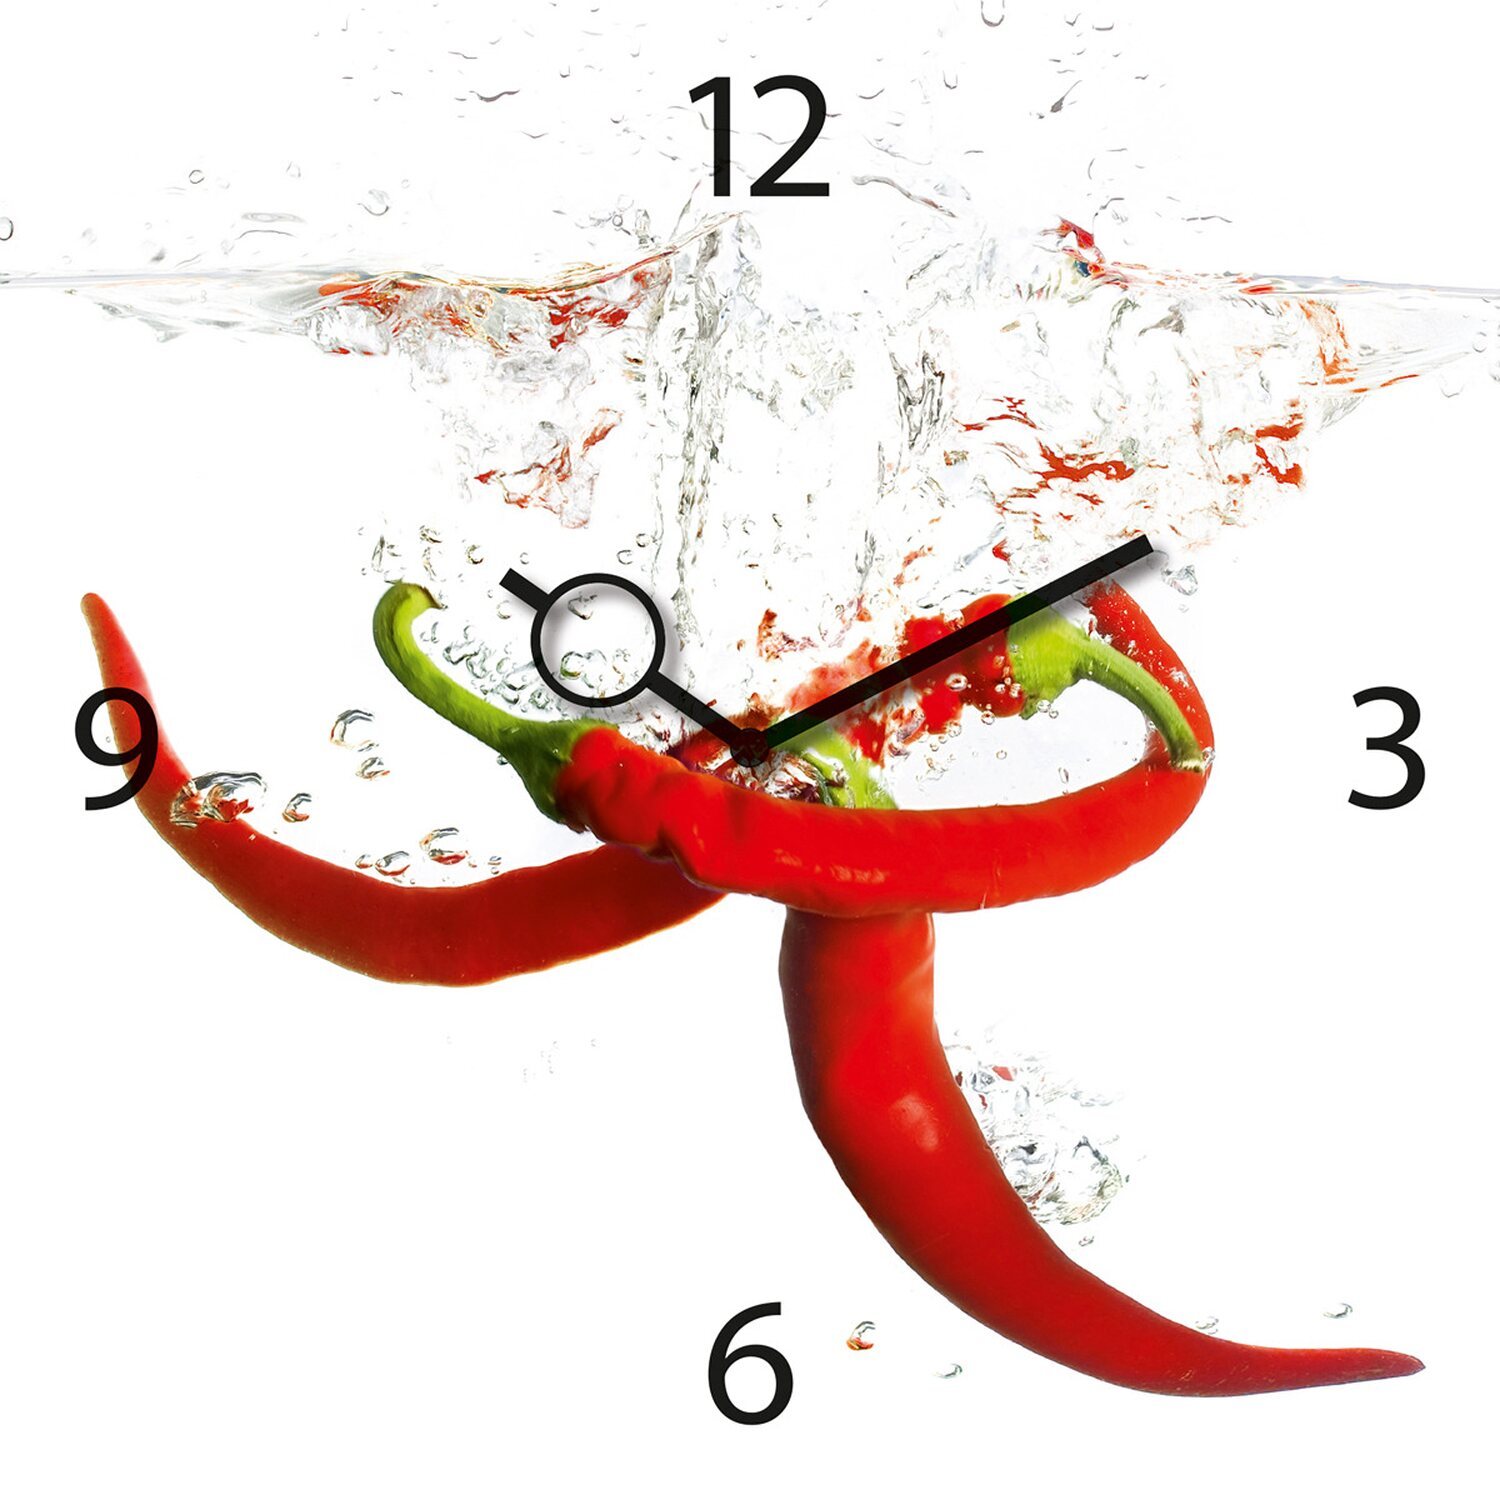 Eurographics wanduhr time art splashing chili pepper 30 cm - Eurographics wanduhr ...